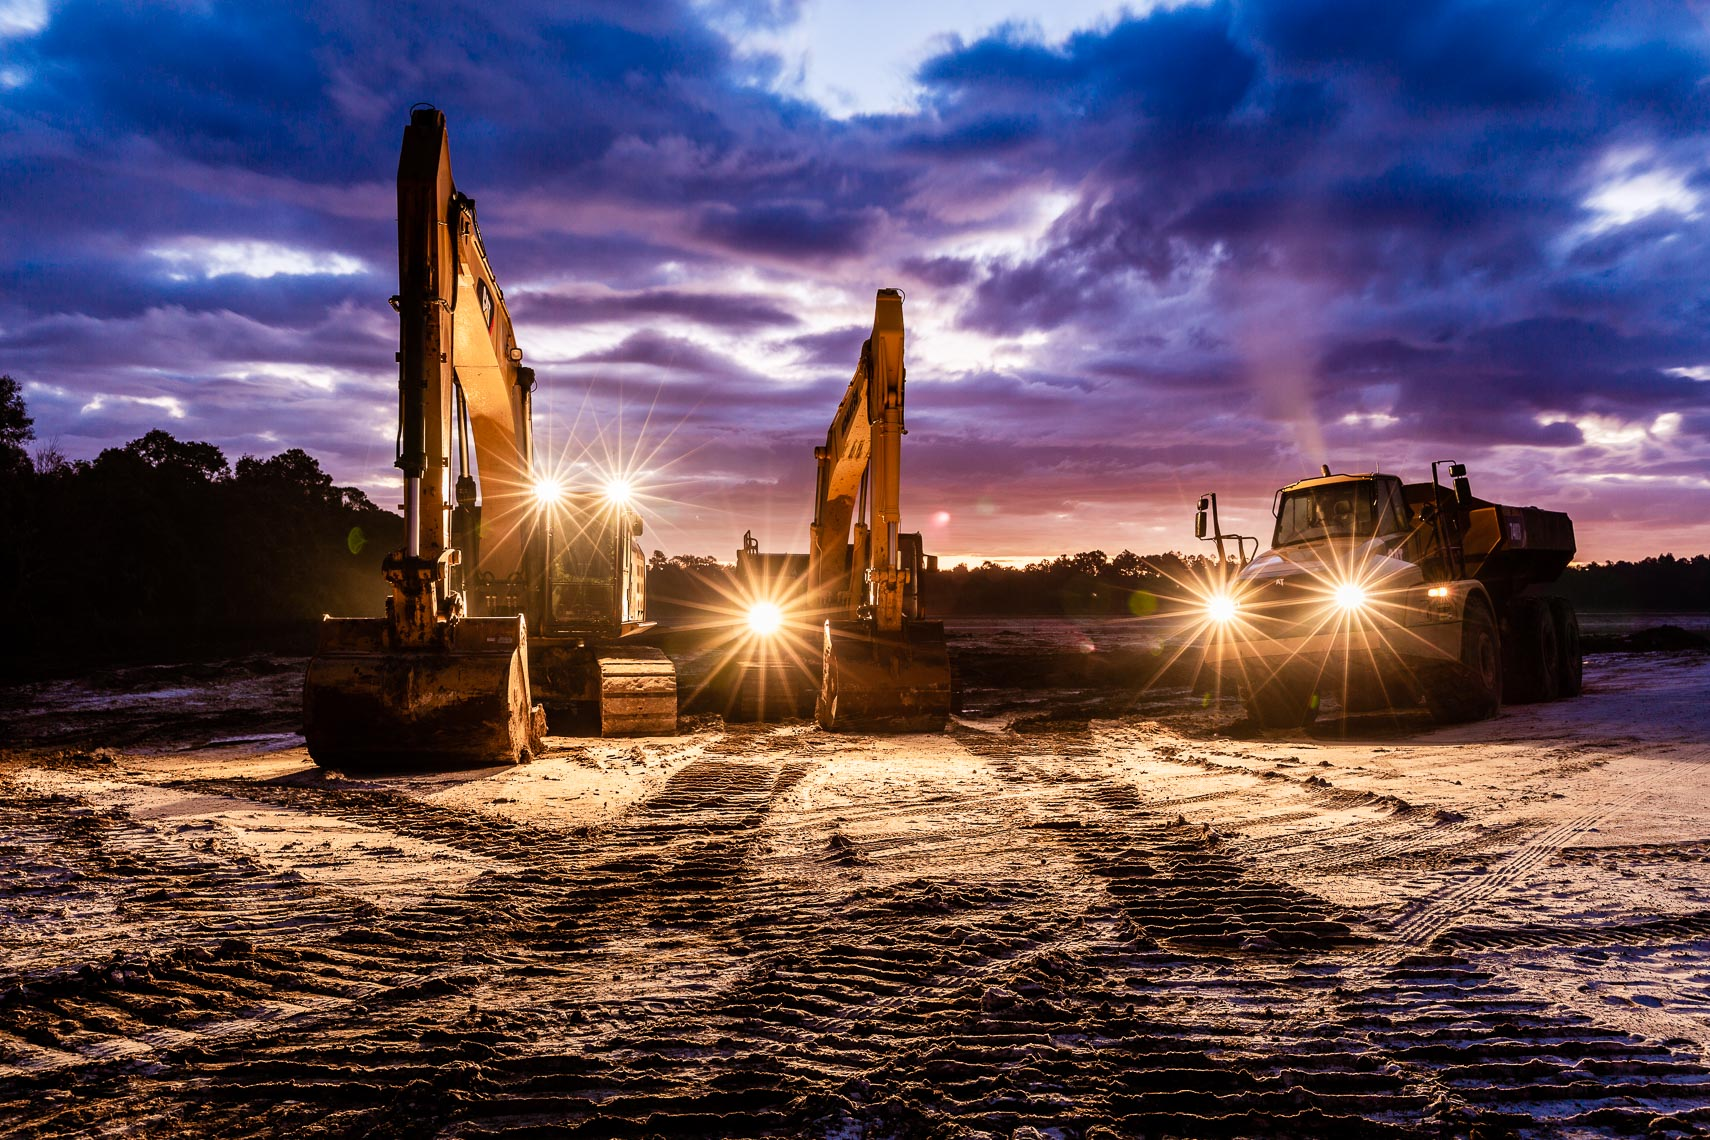 Excavators and Dump Trucks at Sunrise